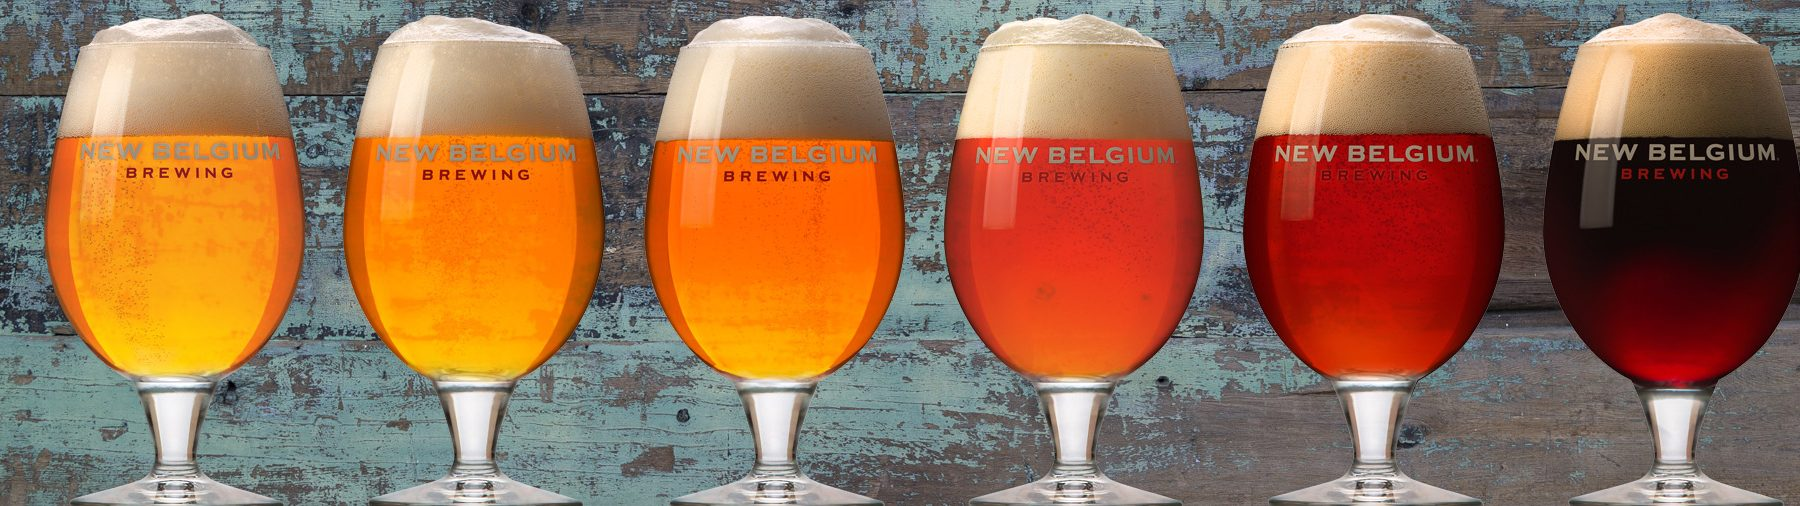 New Belgium Brewery Announces New Beers For 2017